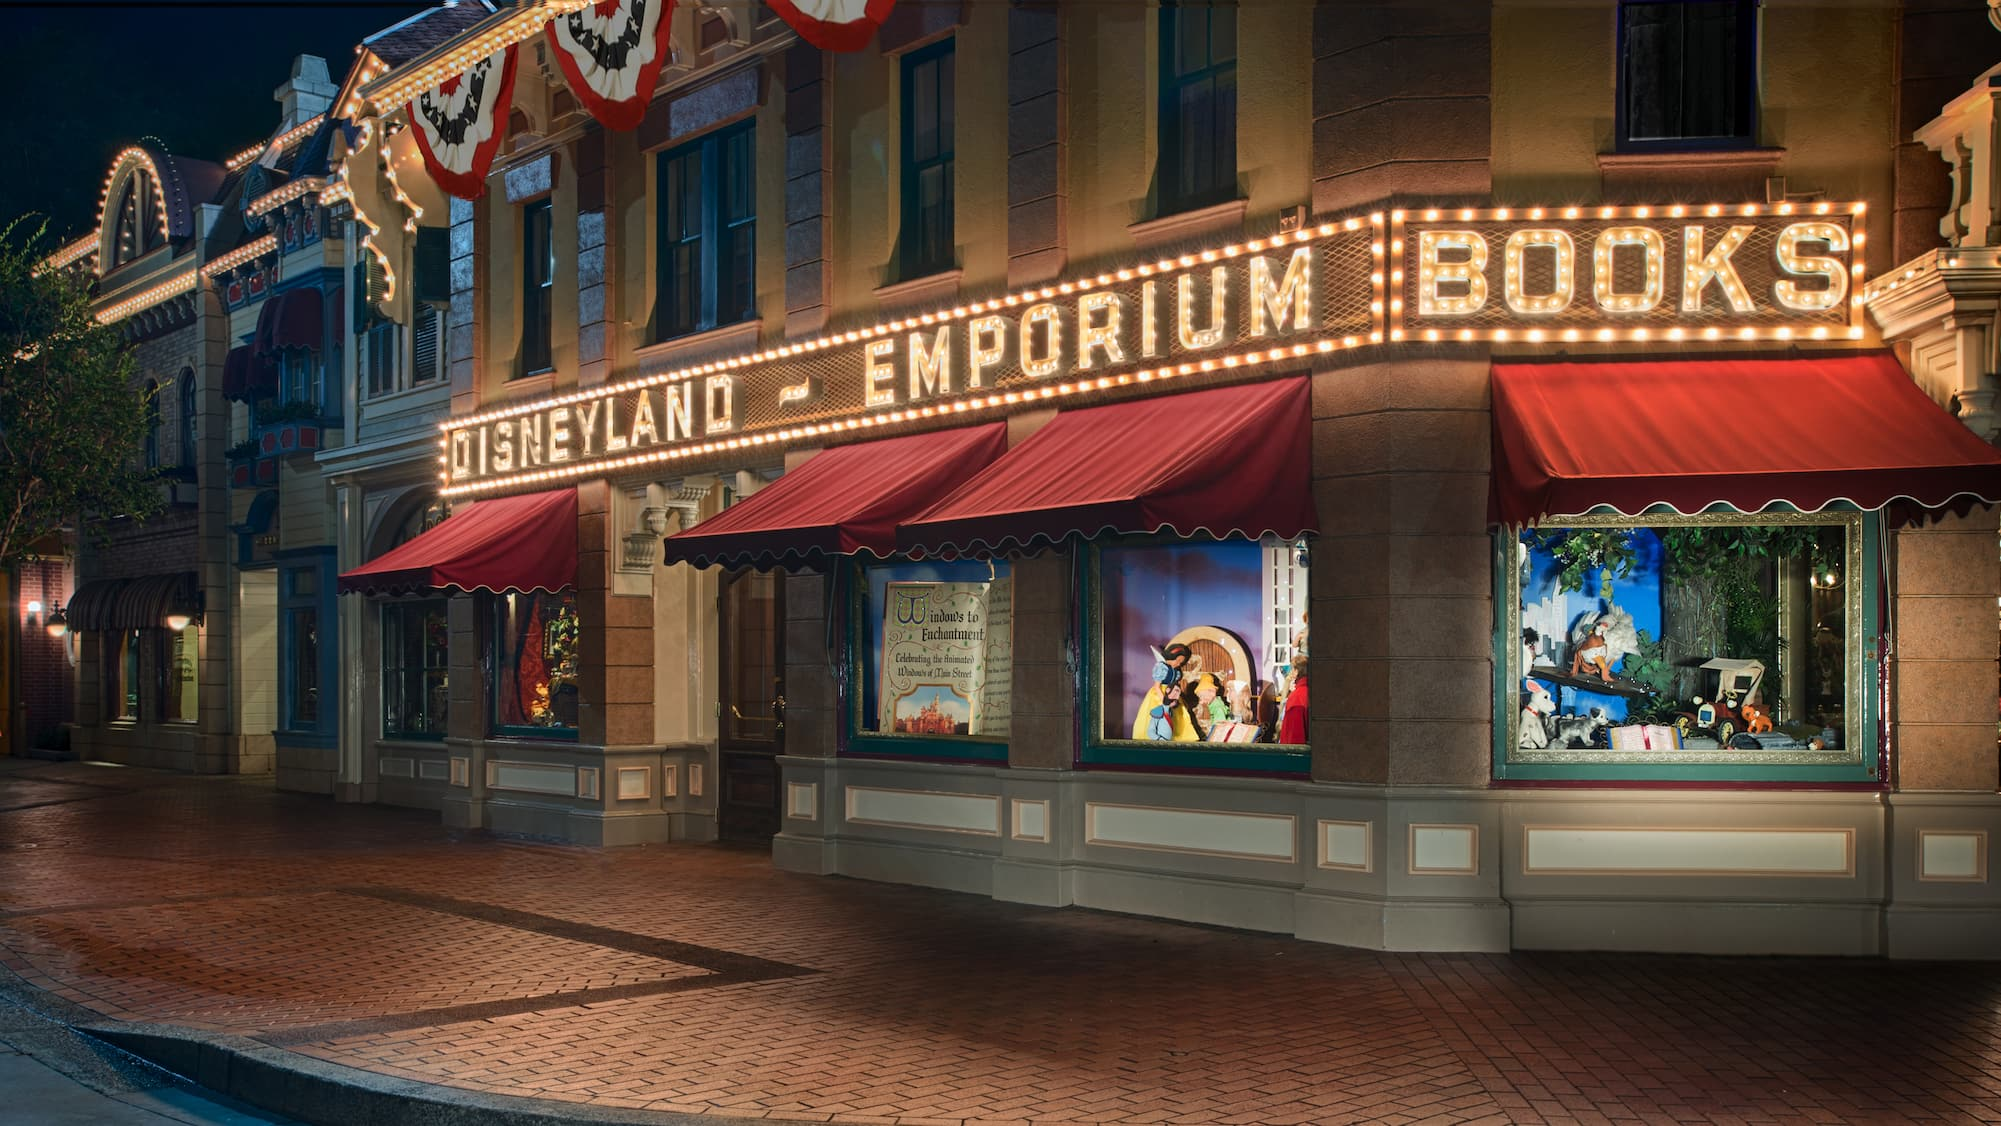 Patriotic flag banners cascade from the storefront as lights outside the Emporium illuminate the night